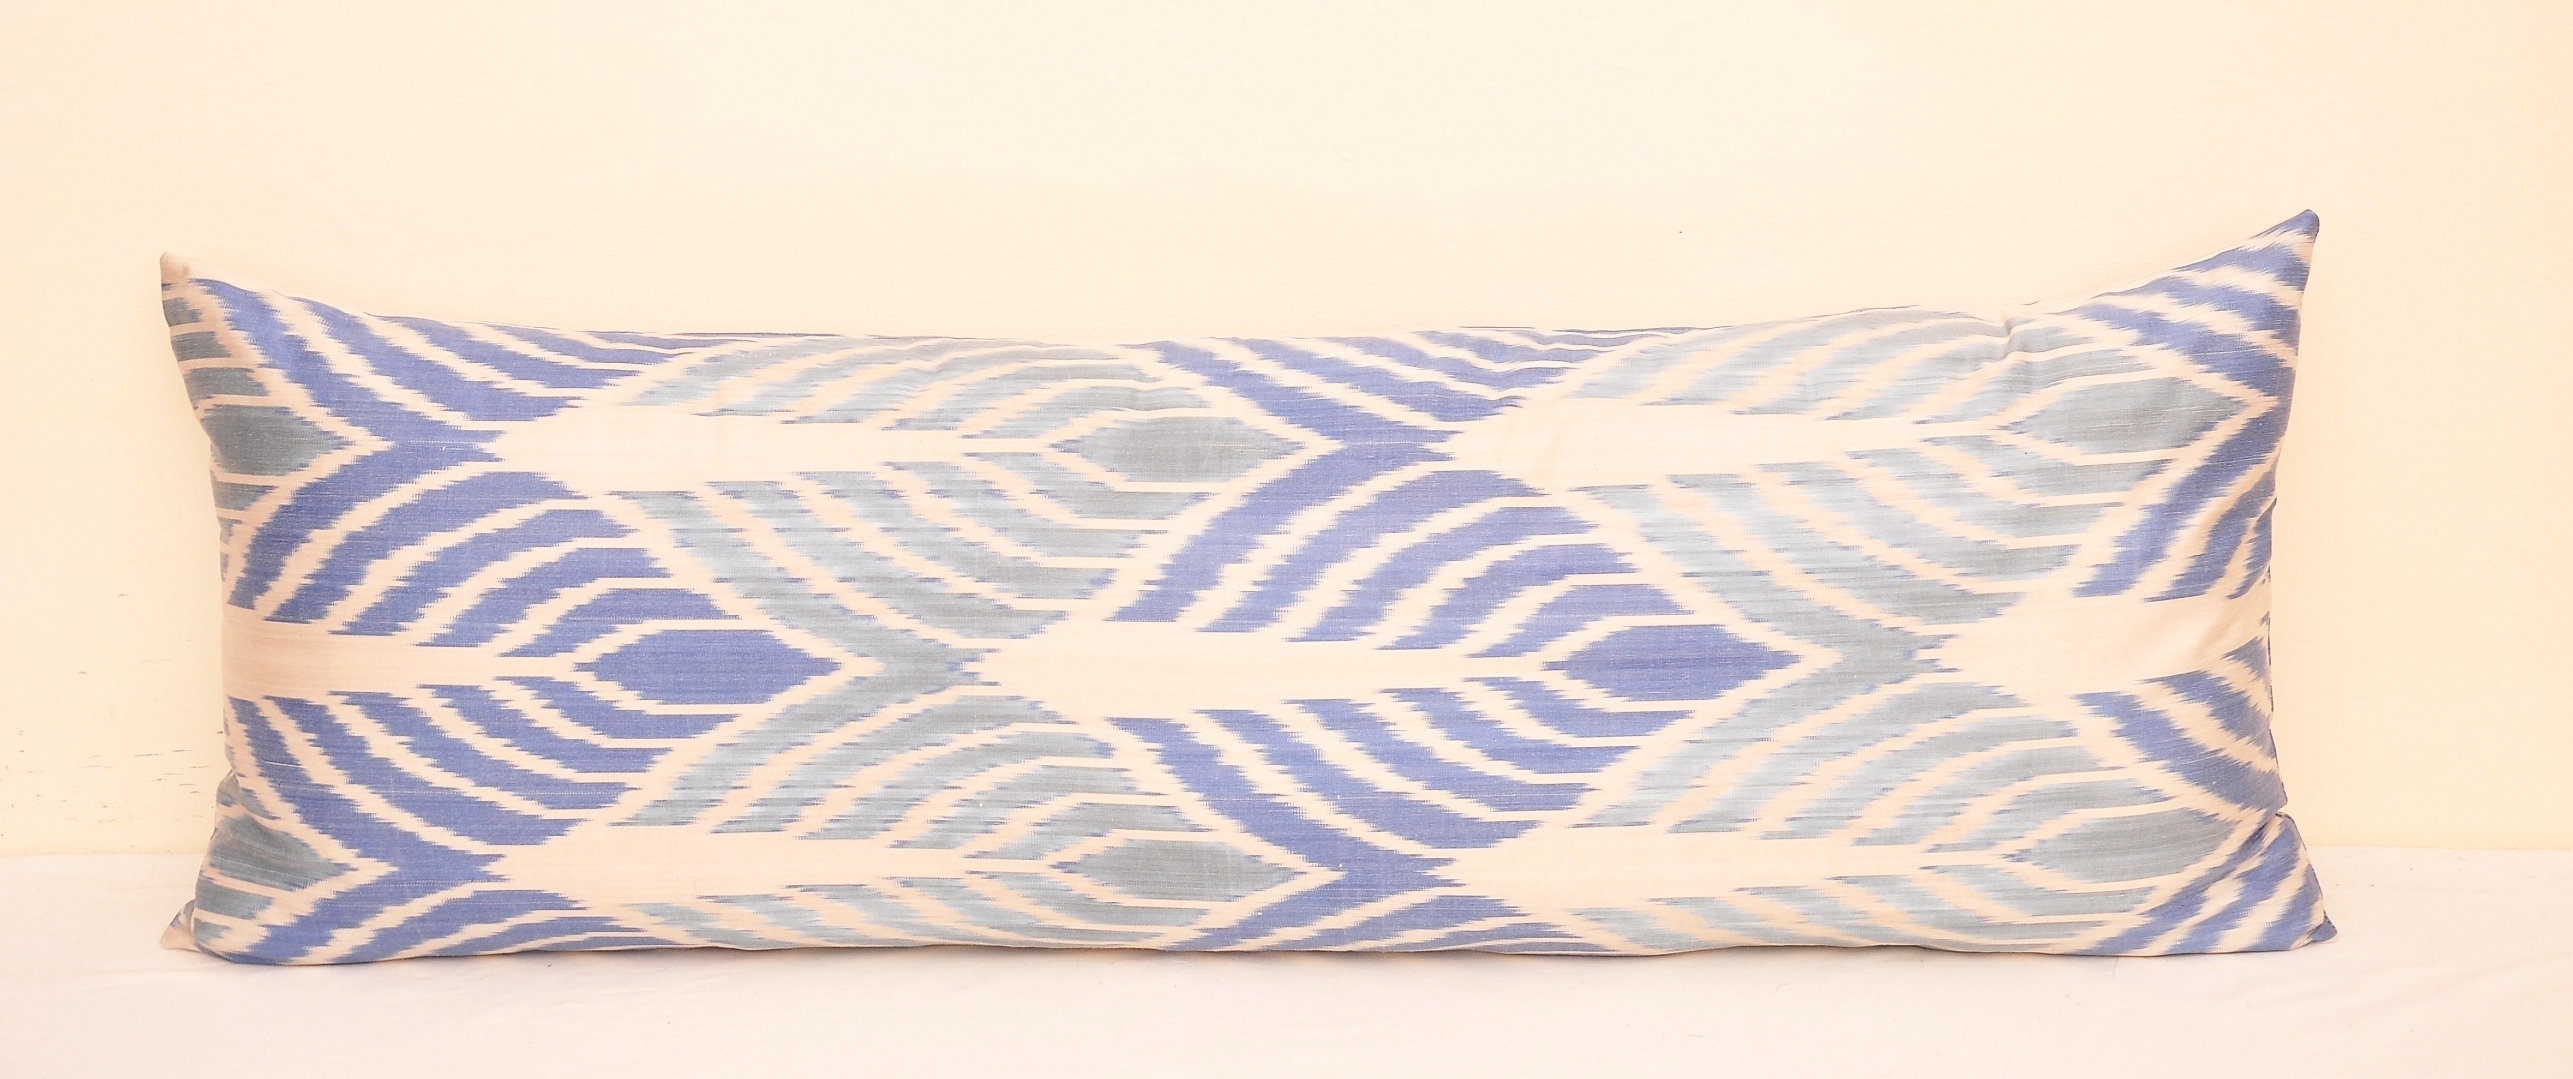 - Blue Ikat Daybed Bolster Pillow Alesouk.com Home Decor